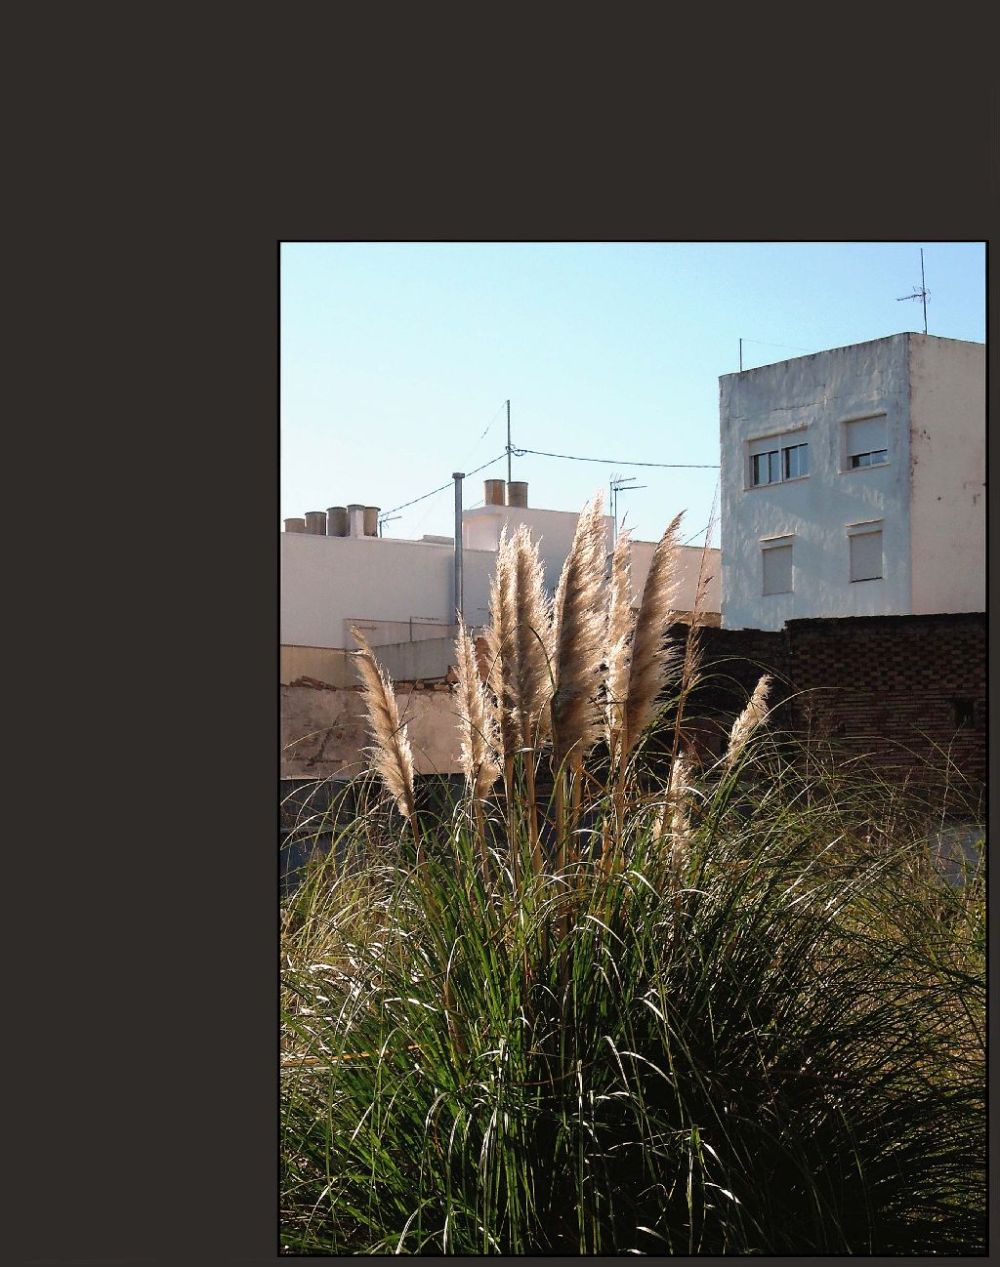 japanese Pampas Grass at The Vacant Land